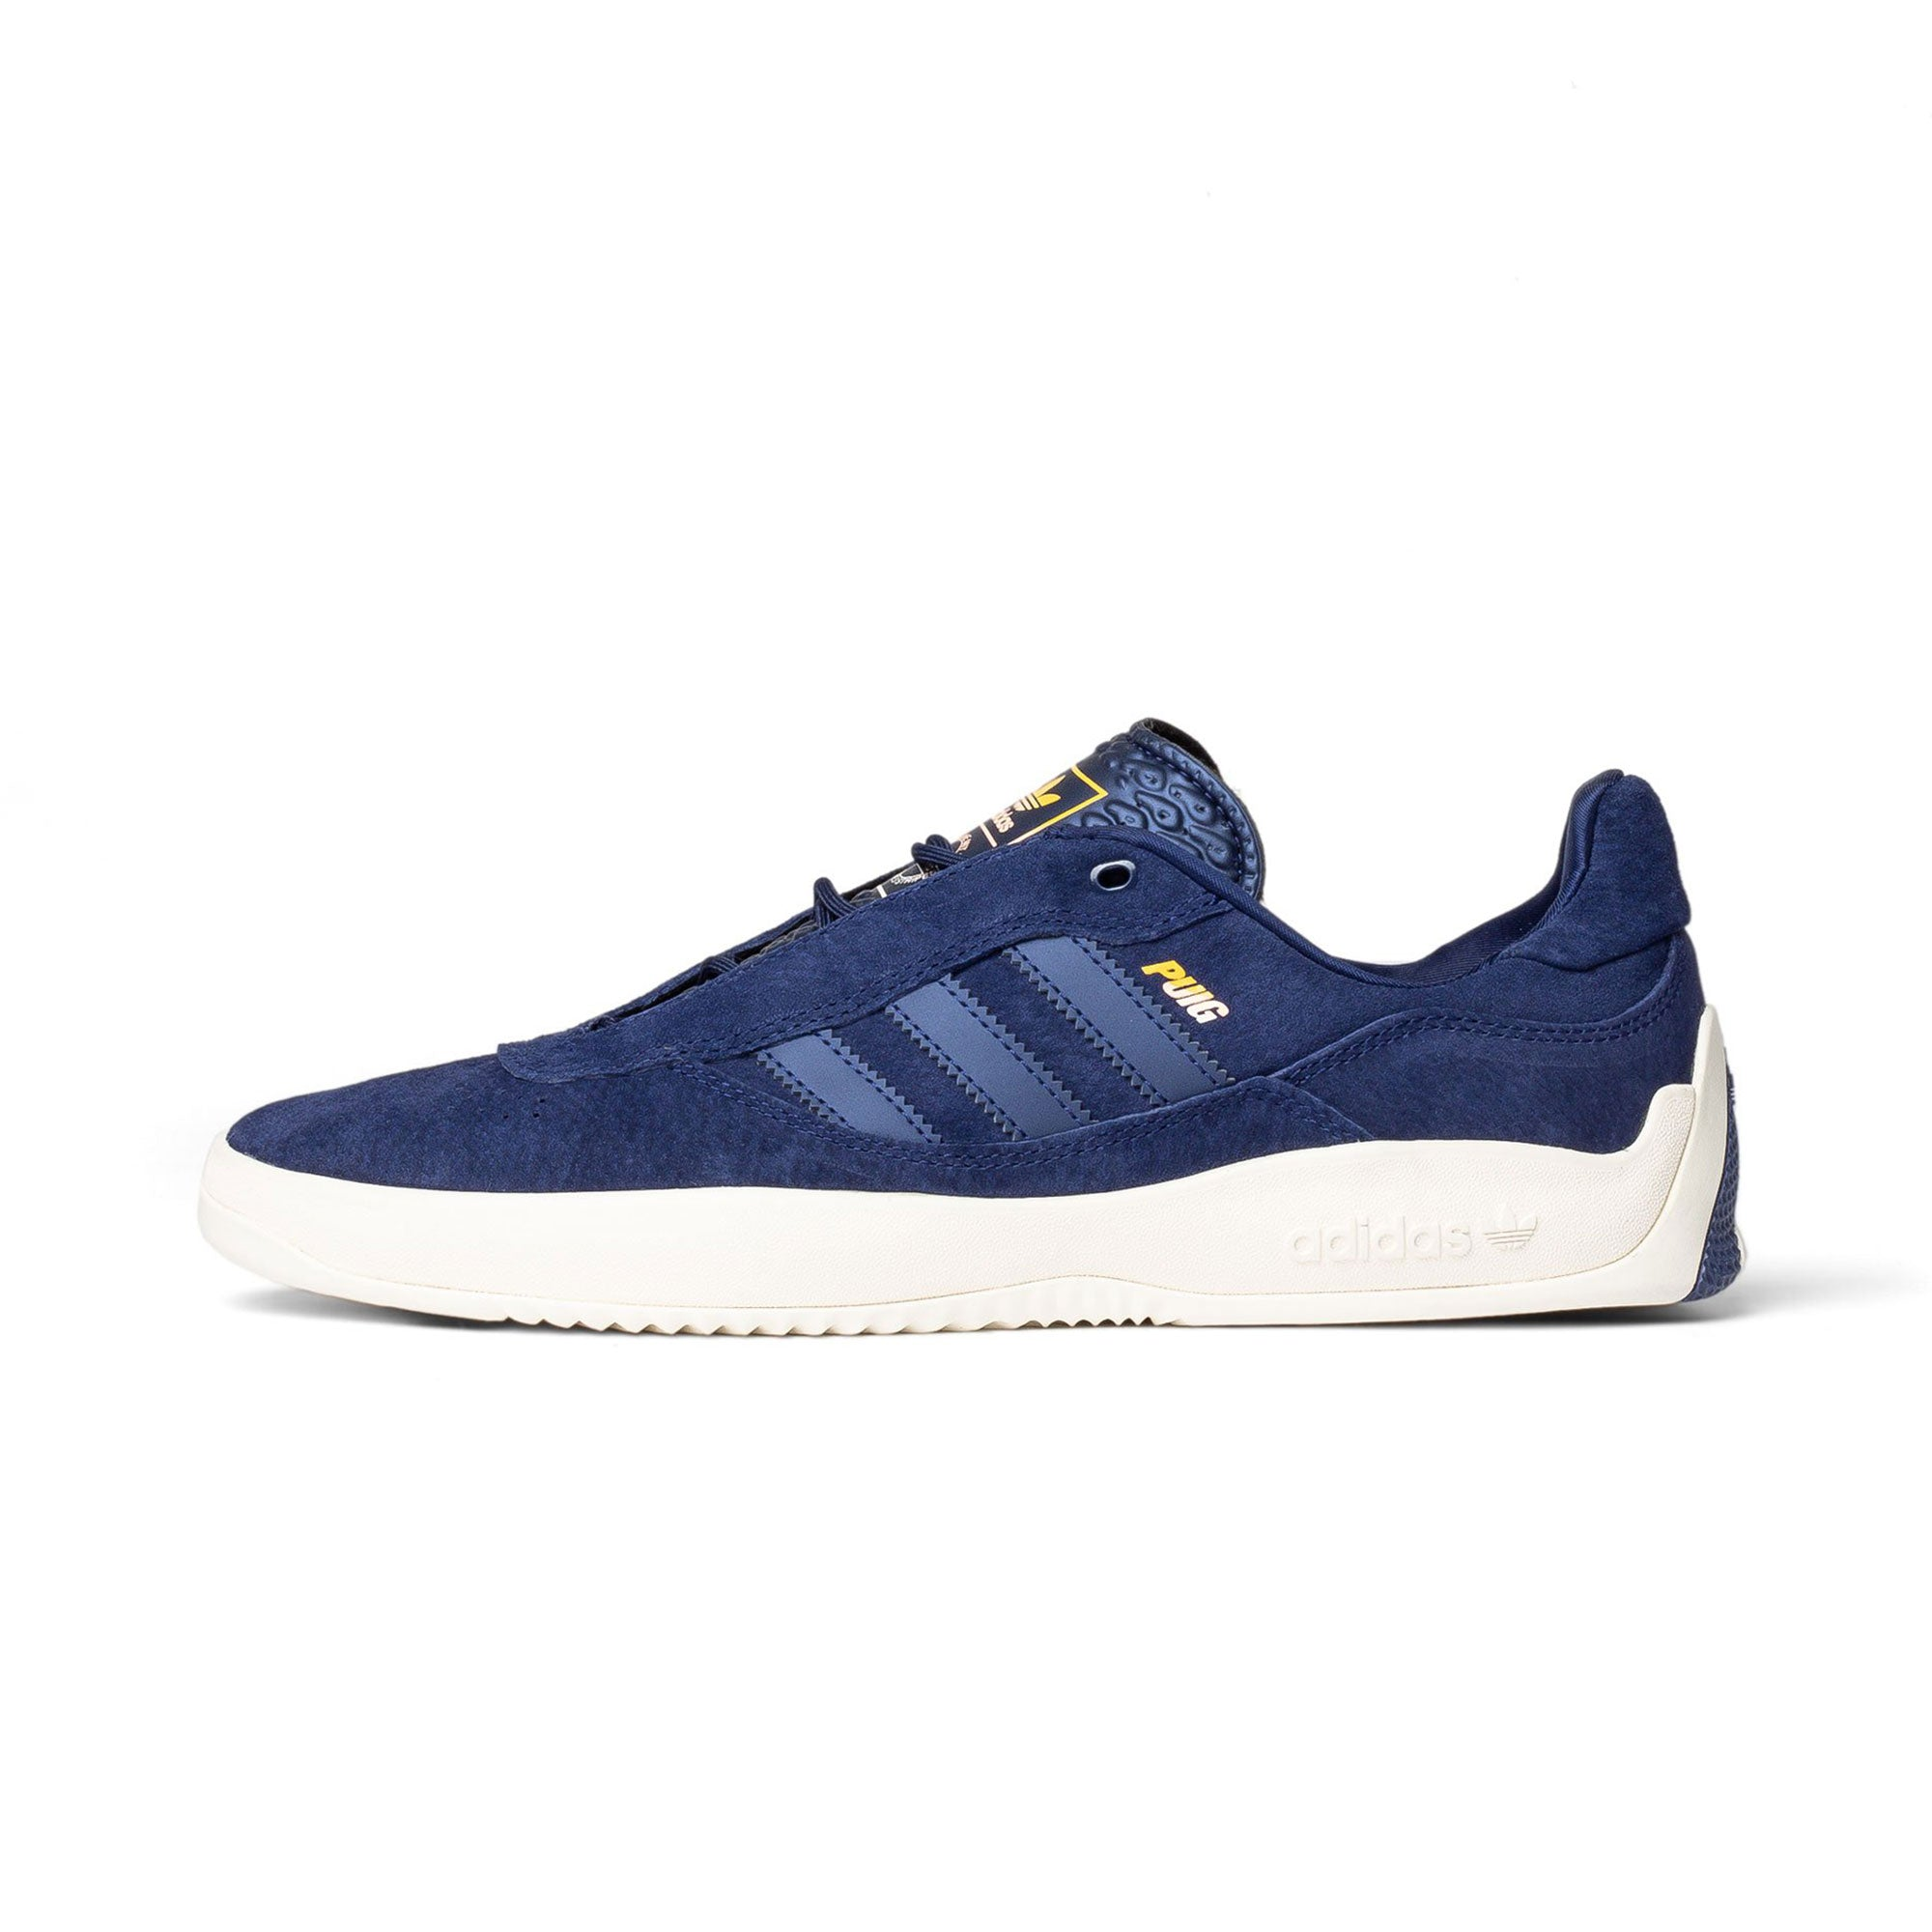 Adidas Puig Product Photo #1